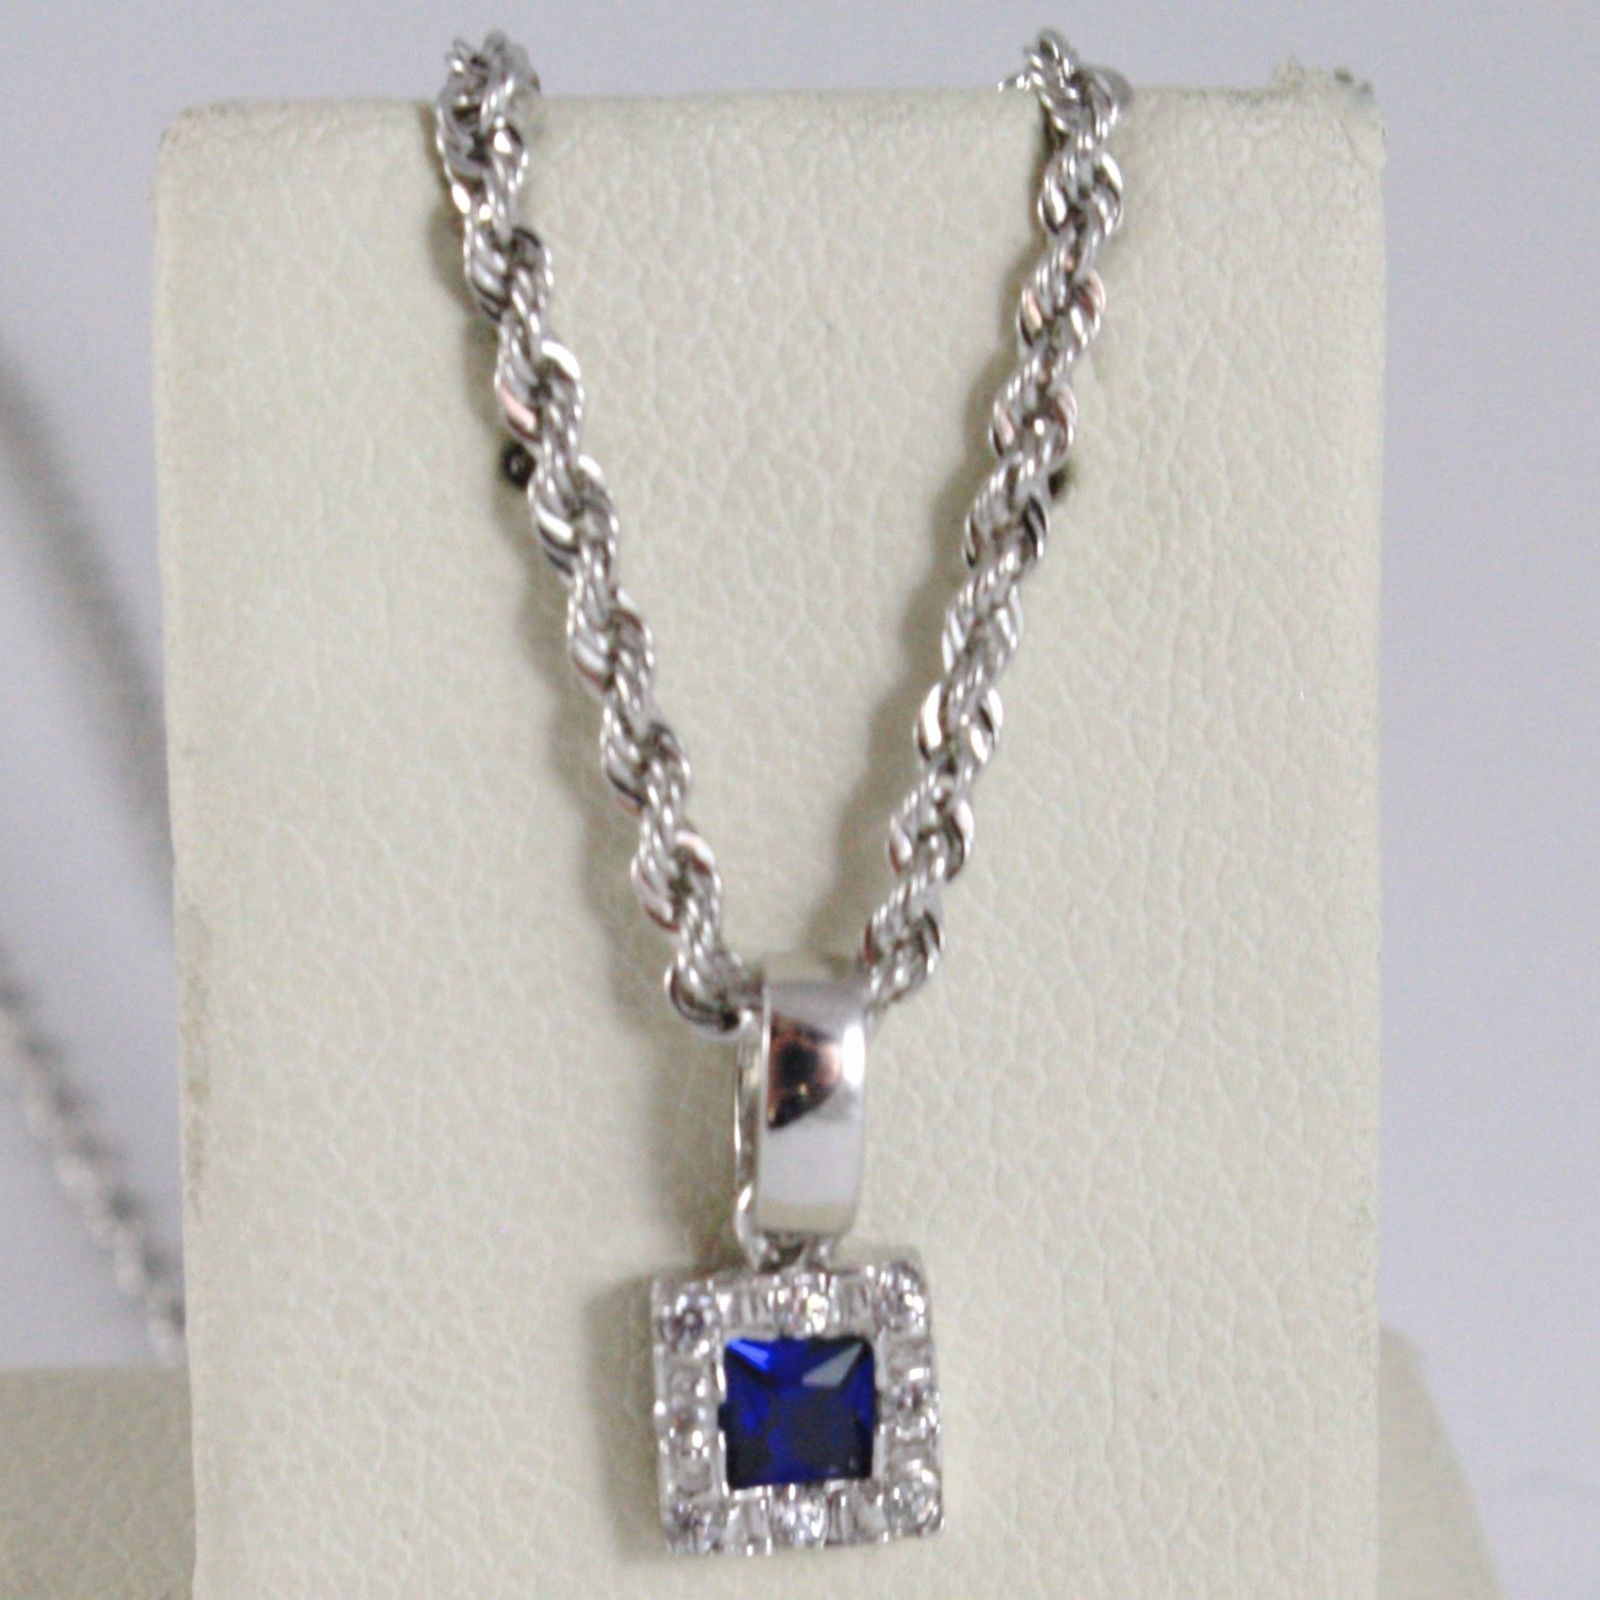 18K WHITE GOLD NECKLACE ROPE CHAIN & SQUARE PENDANT, BLUE ZIRCONIA PRINCESS CUT